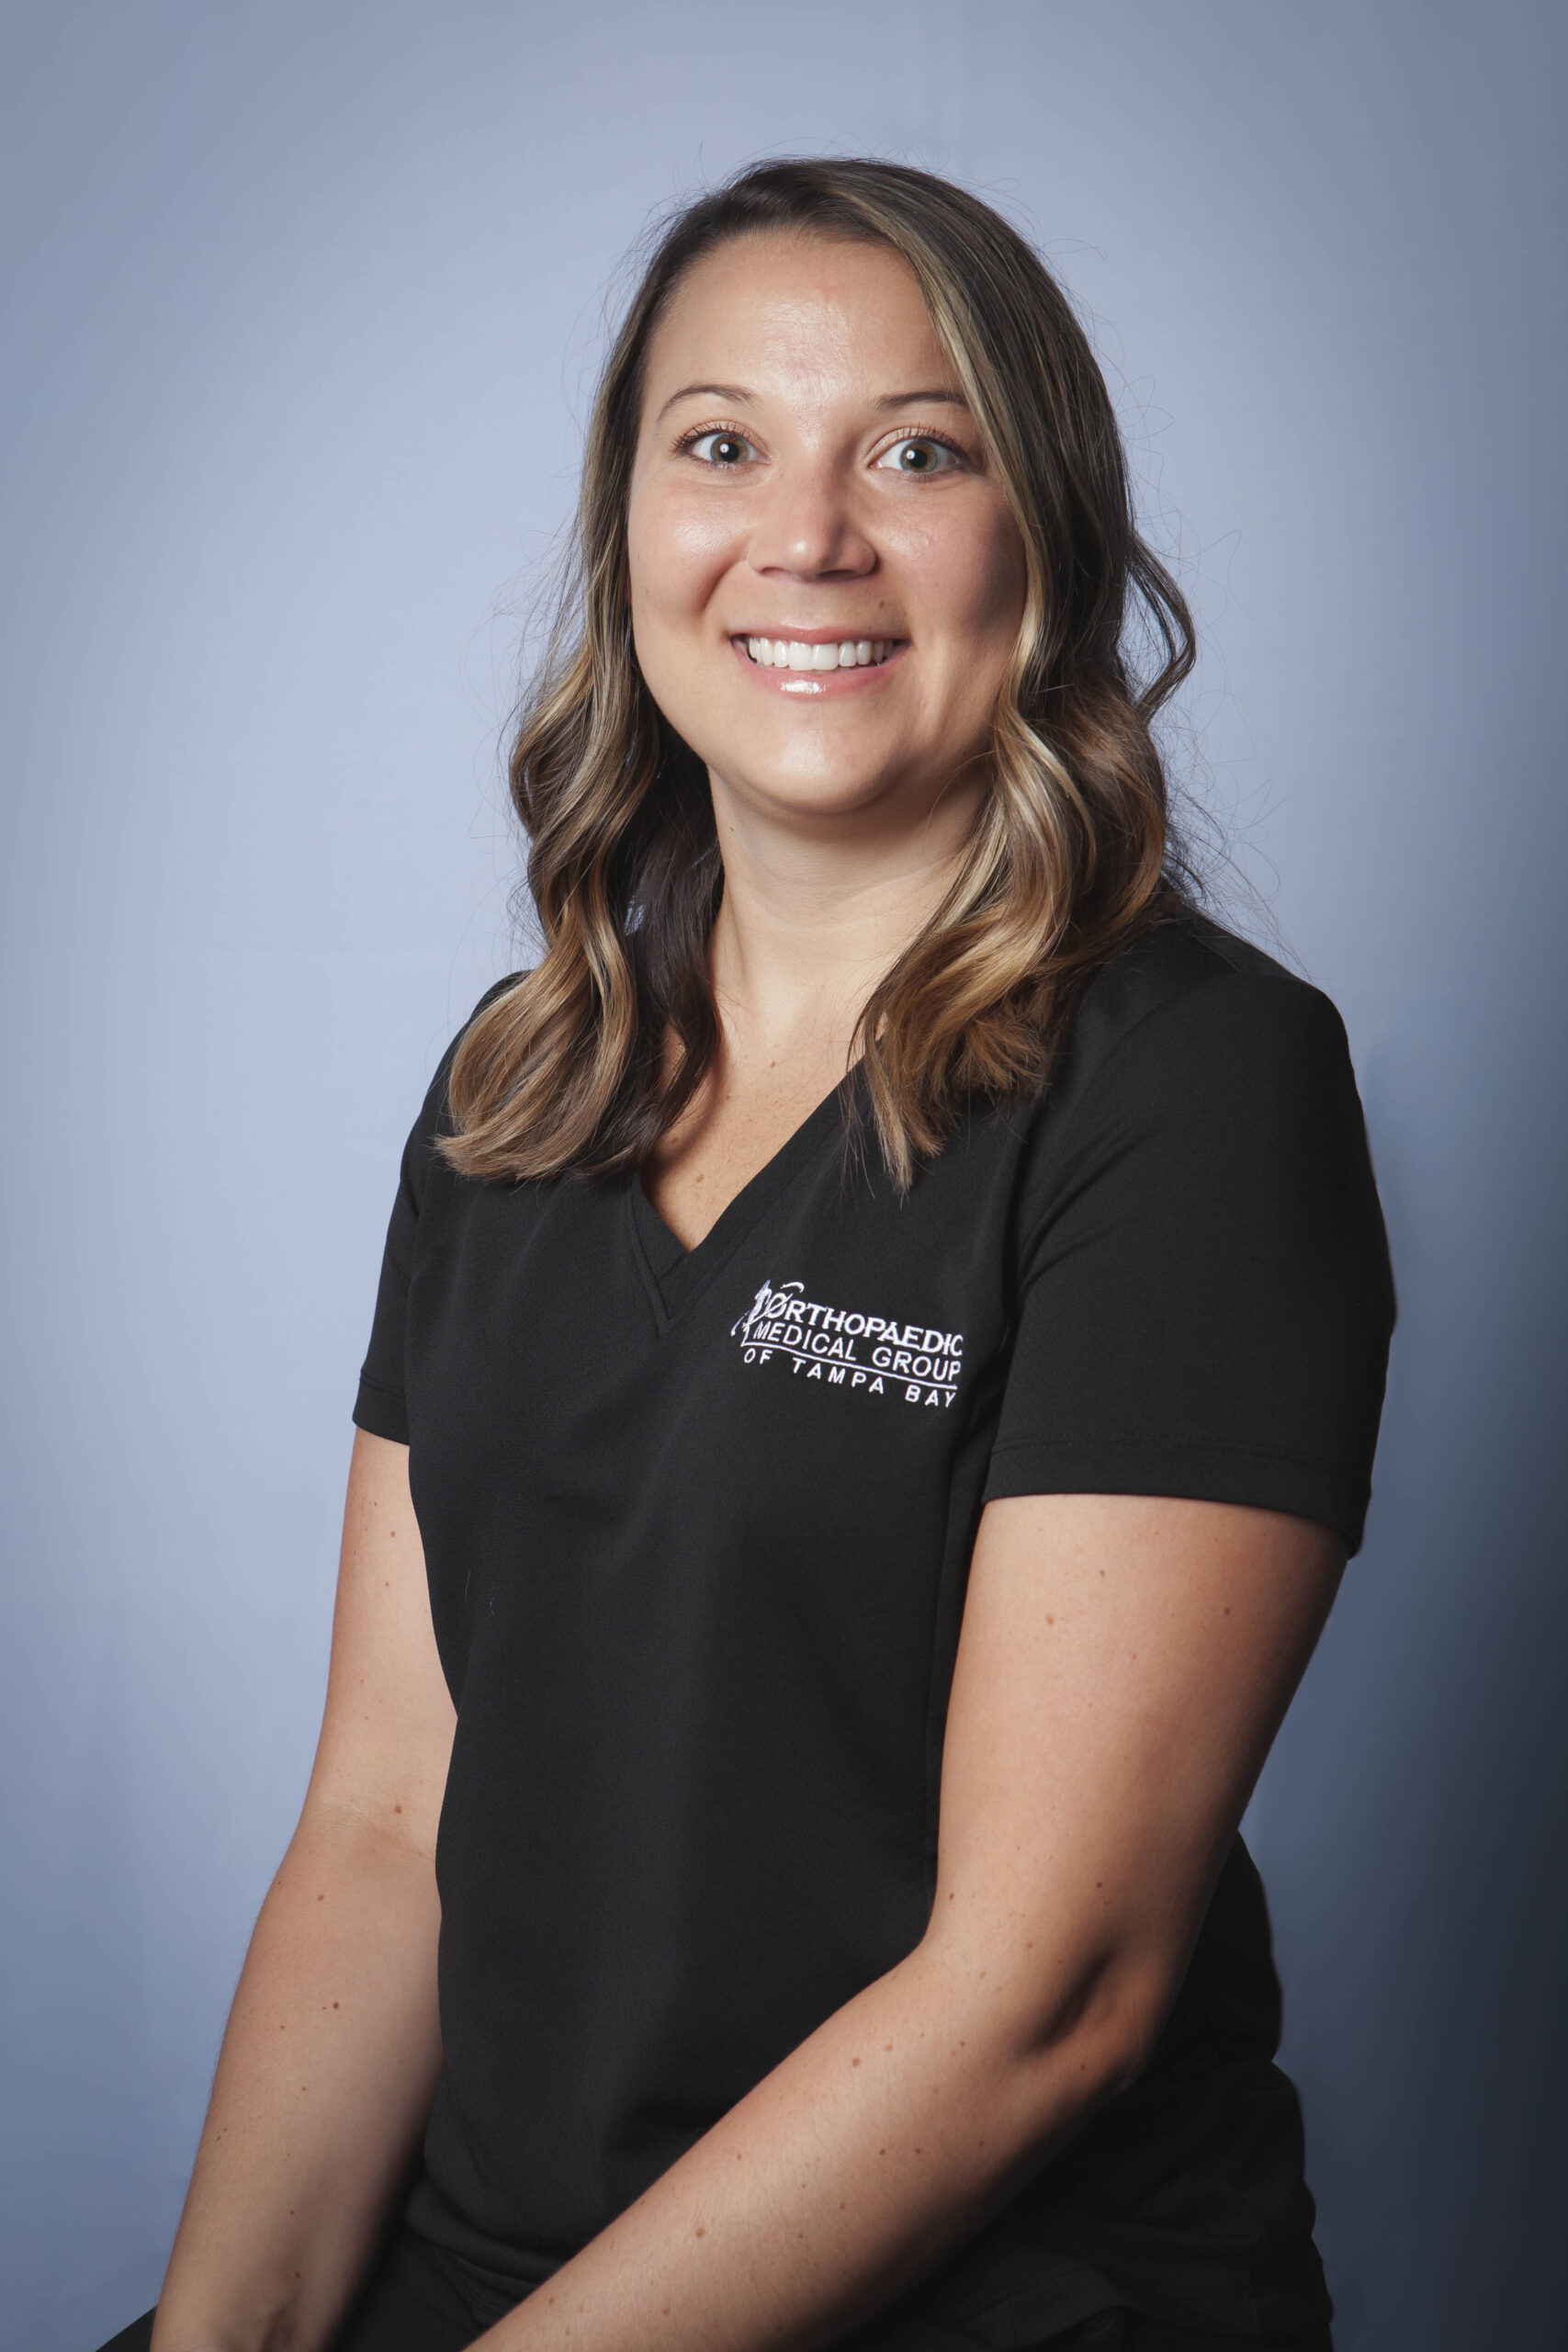 Melissa Huber - Orthopaedic Medical Group of Tampa Bay